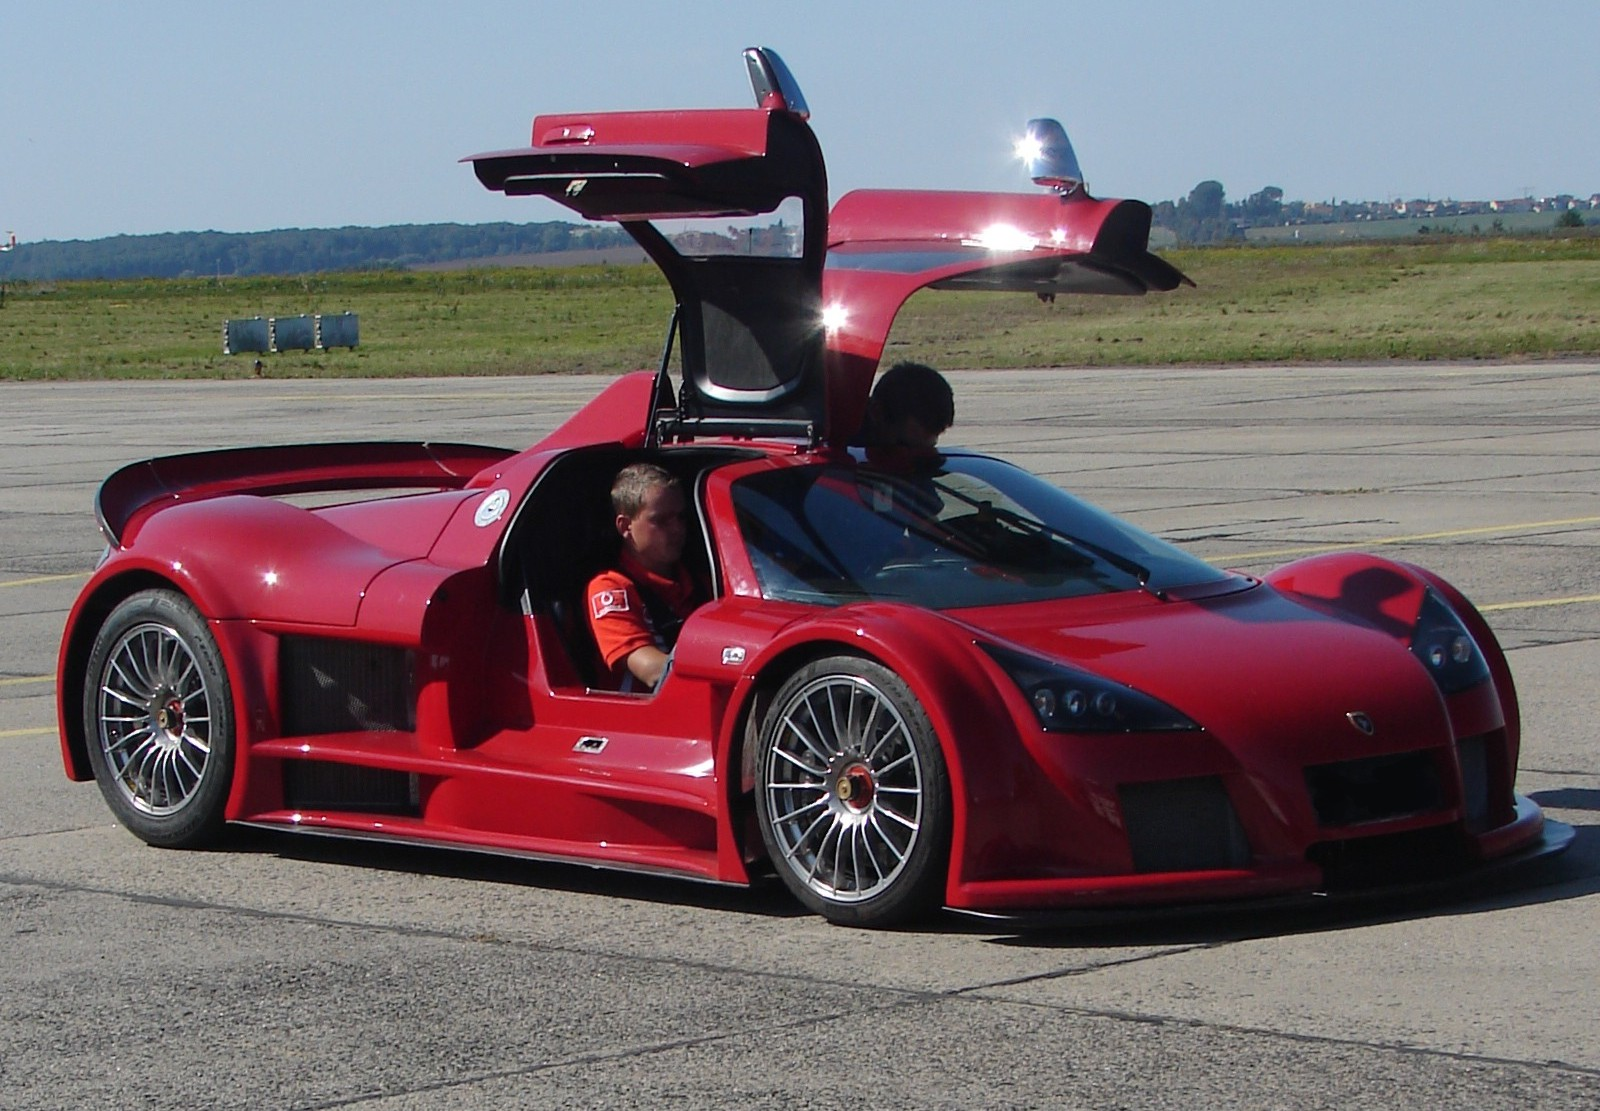 COOL IMAGES: Gumpert Apollo